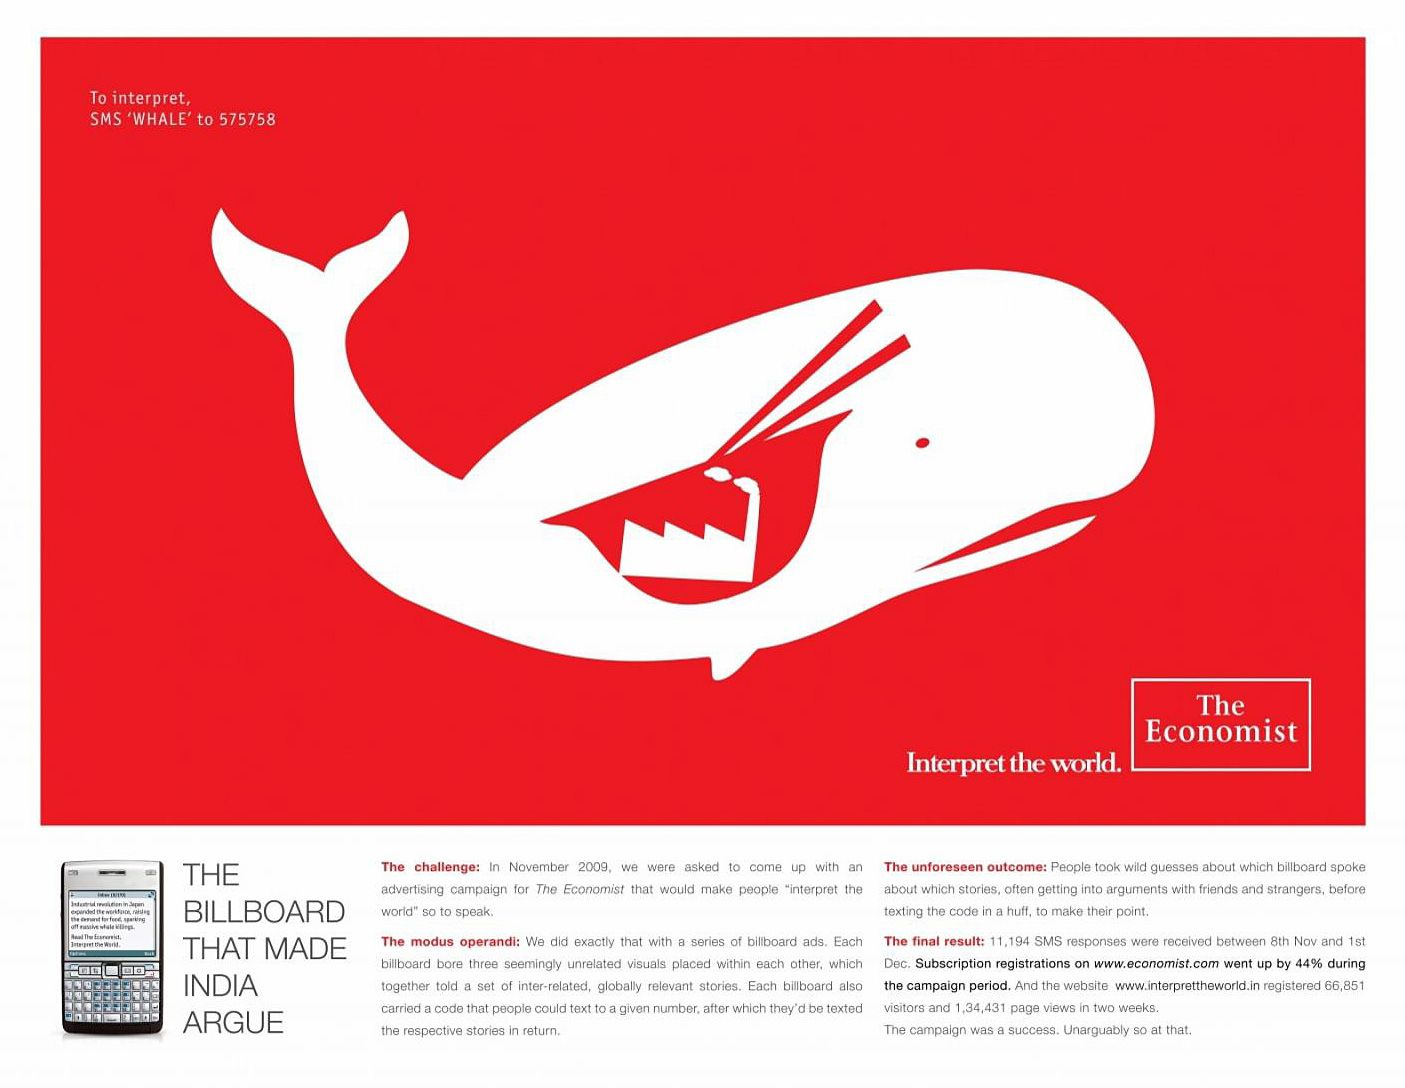 advertising agency ogilvy mather mumbai india chief creative officers rajiv rao - Ogilvy Mather Ad Agency